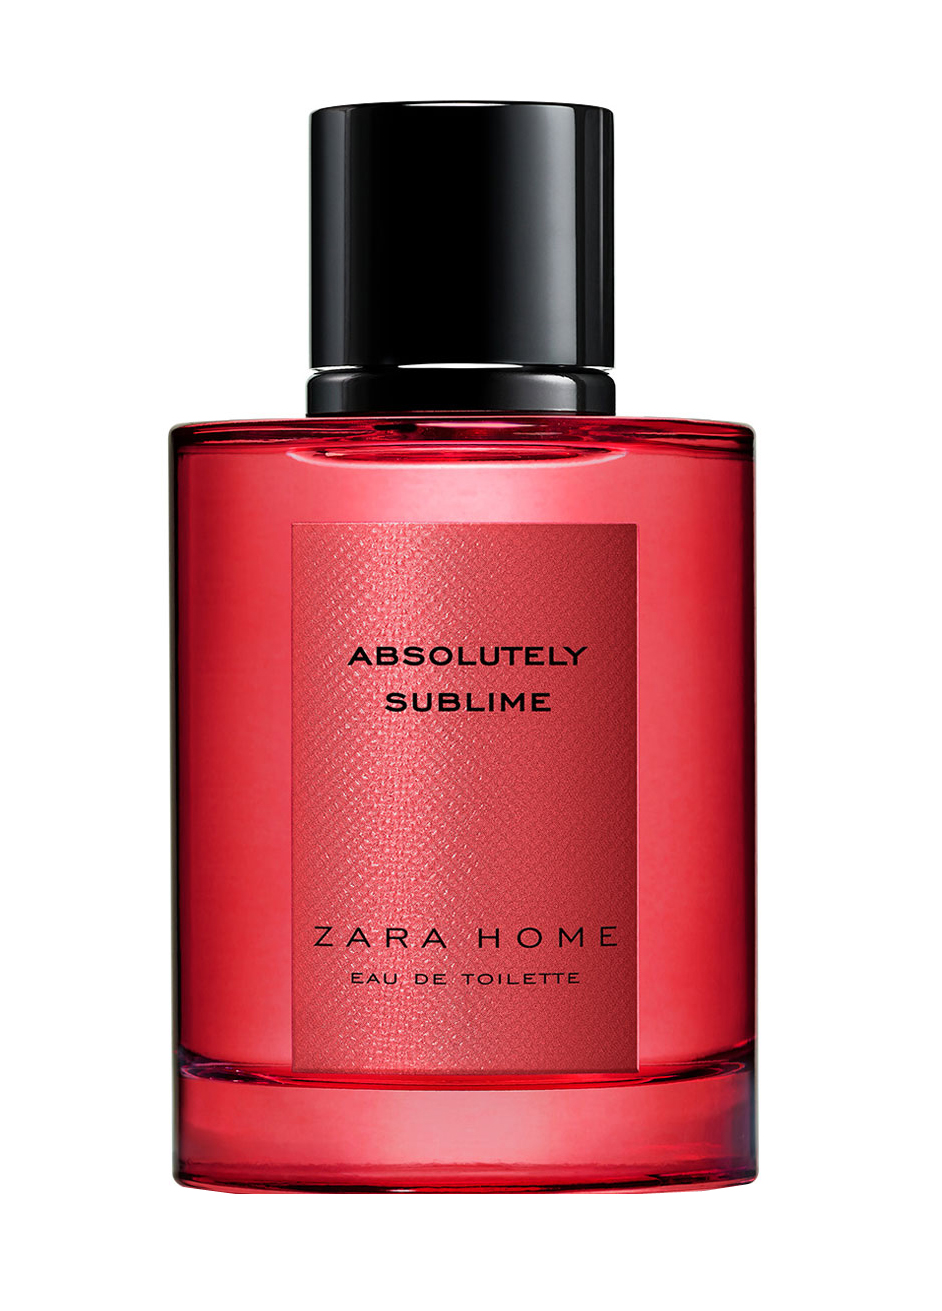 Absolutely Sublime Zara Home Perfume A New Fragrance For